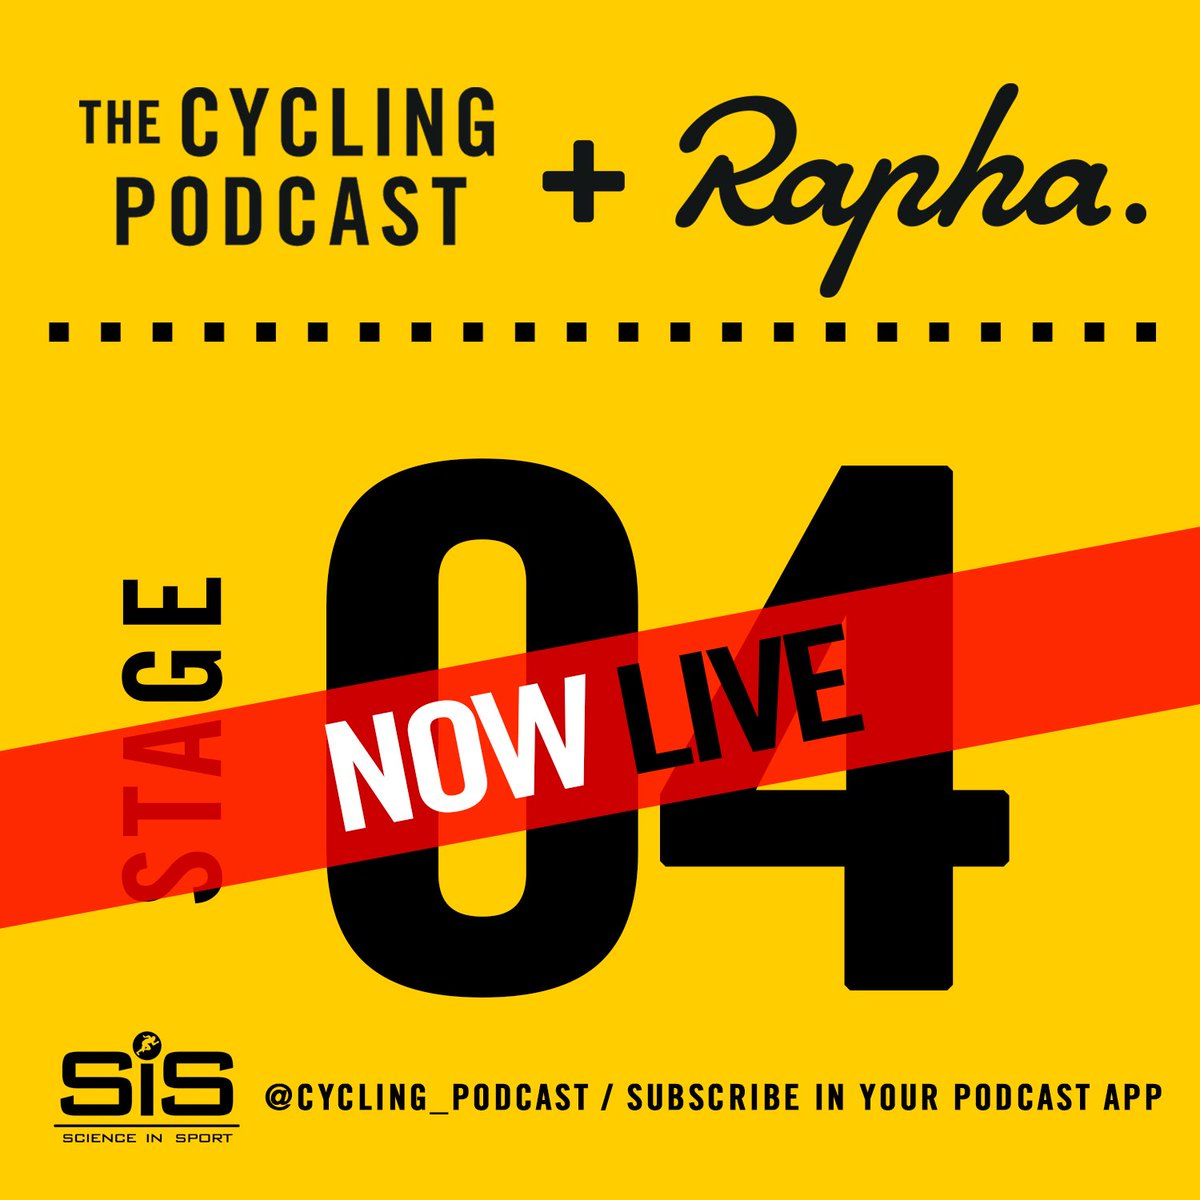 The Cycling Podcast on Twitter: